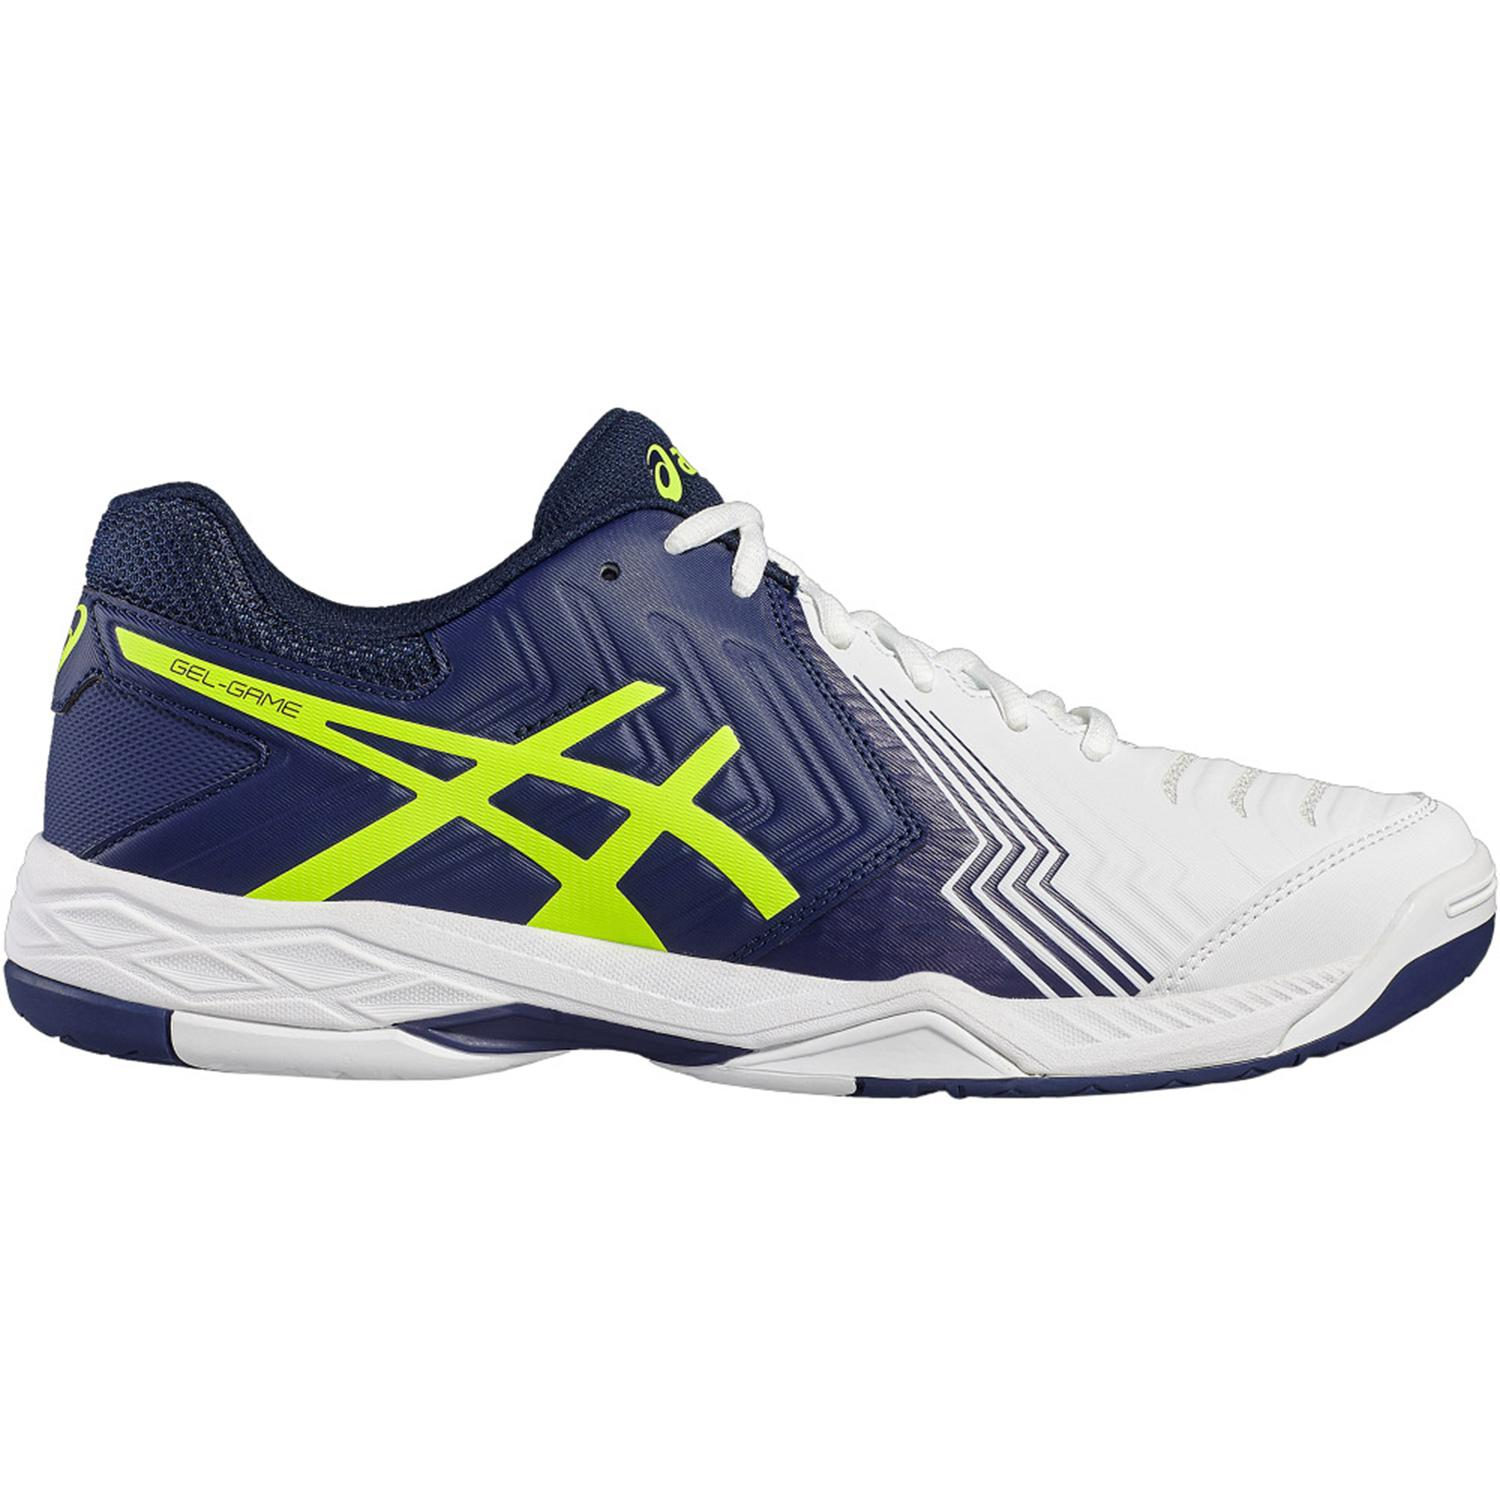 asics gel game 6 mens tennis trainer